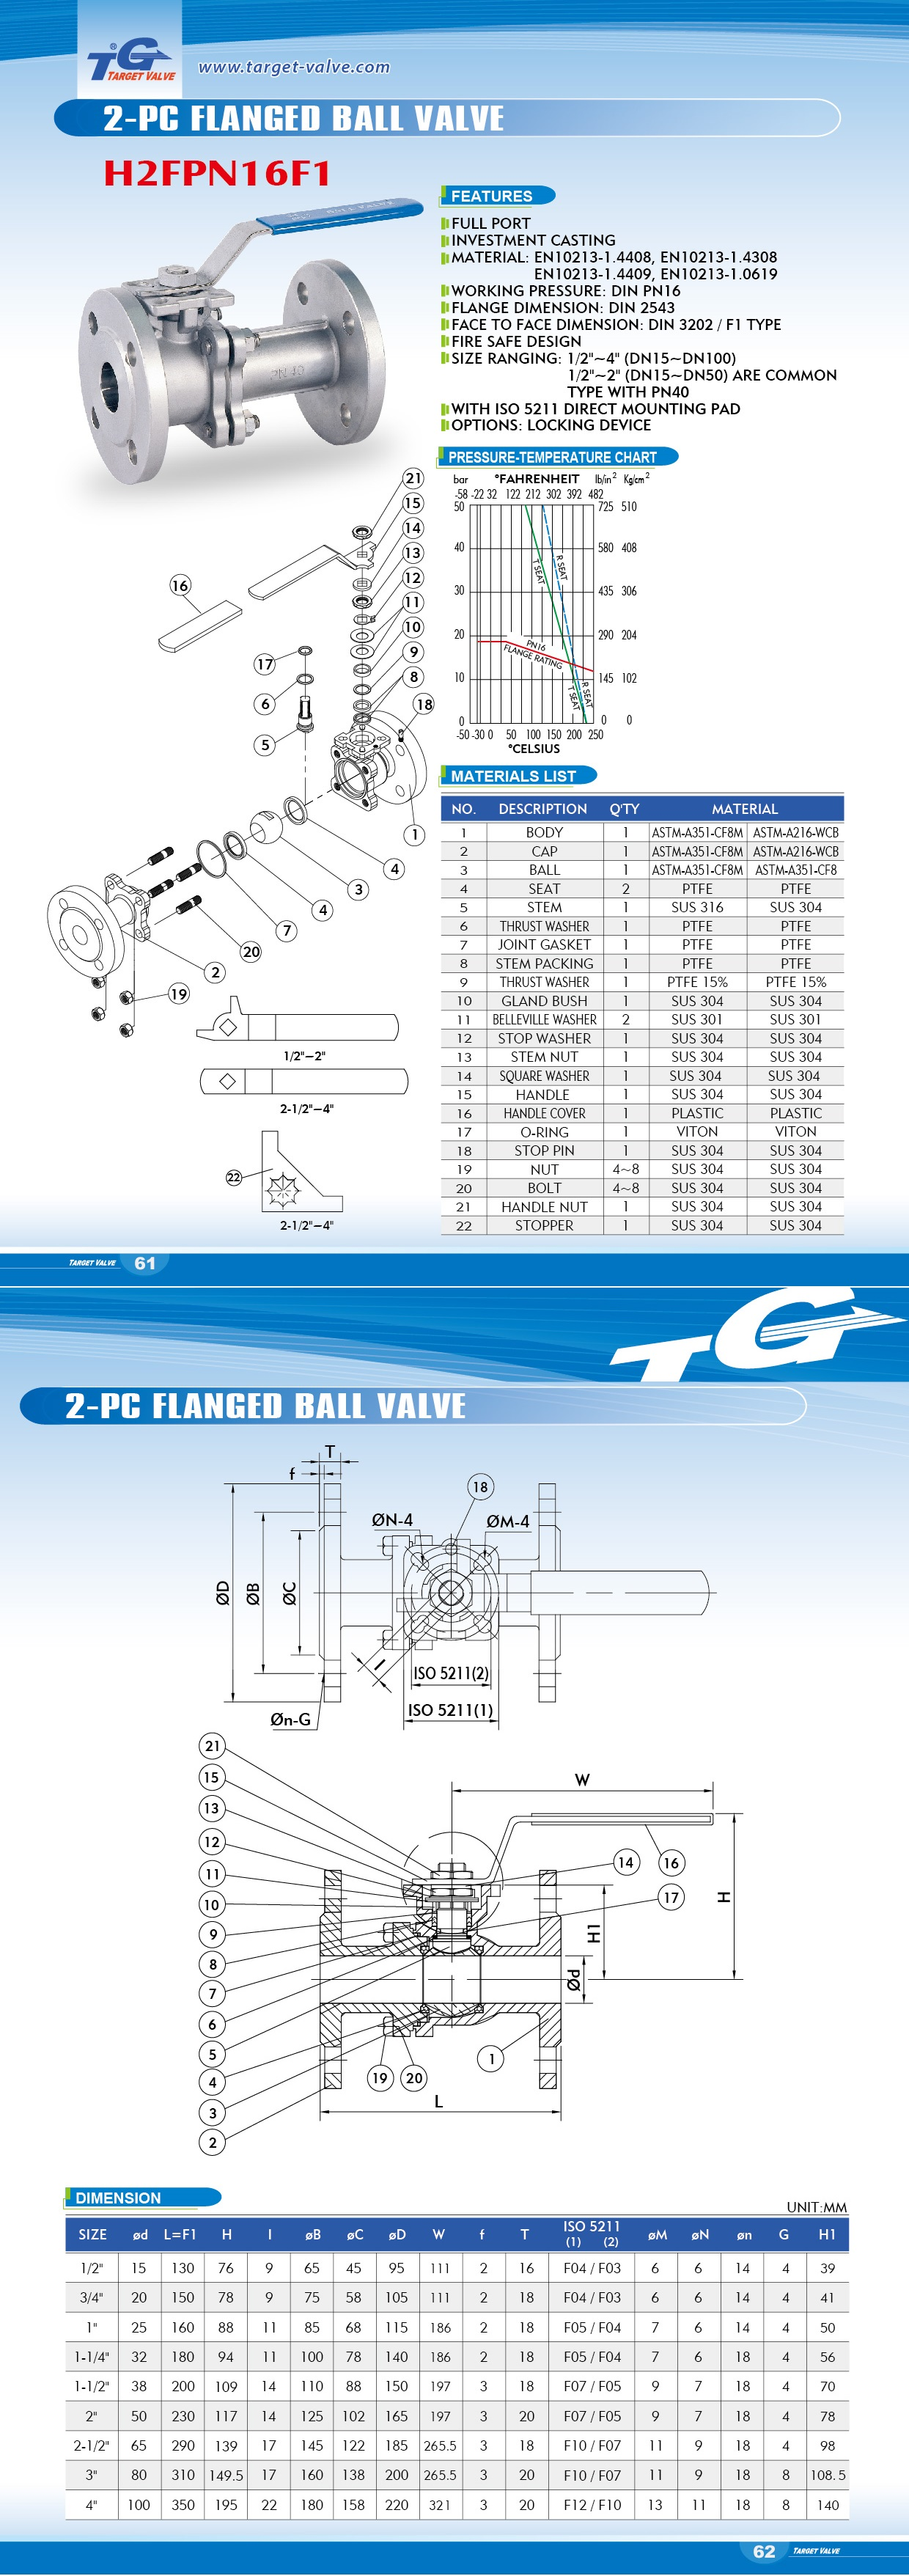 2 PC FLANGED BALL VALVE - H2FPN16F1